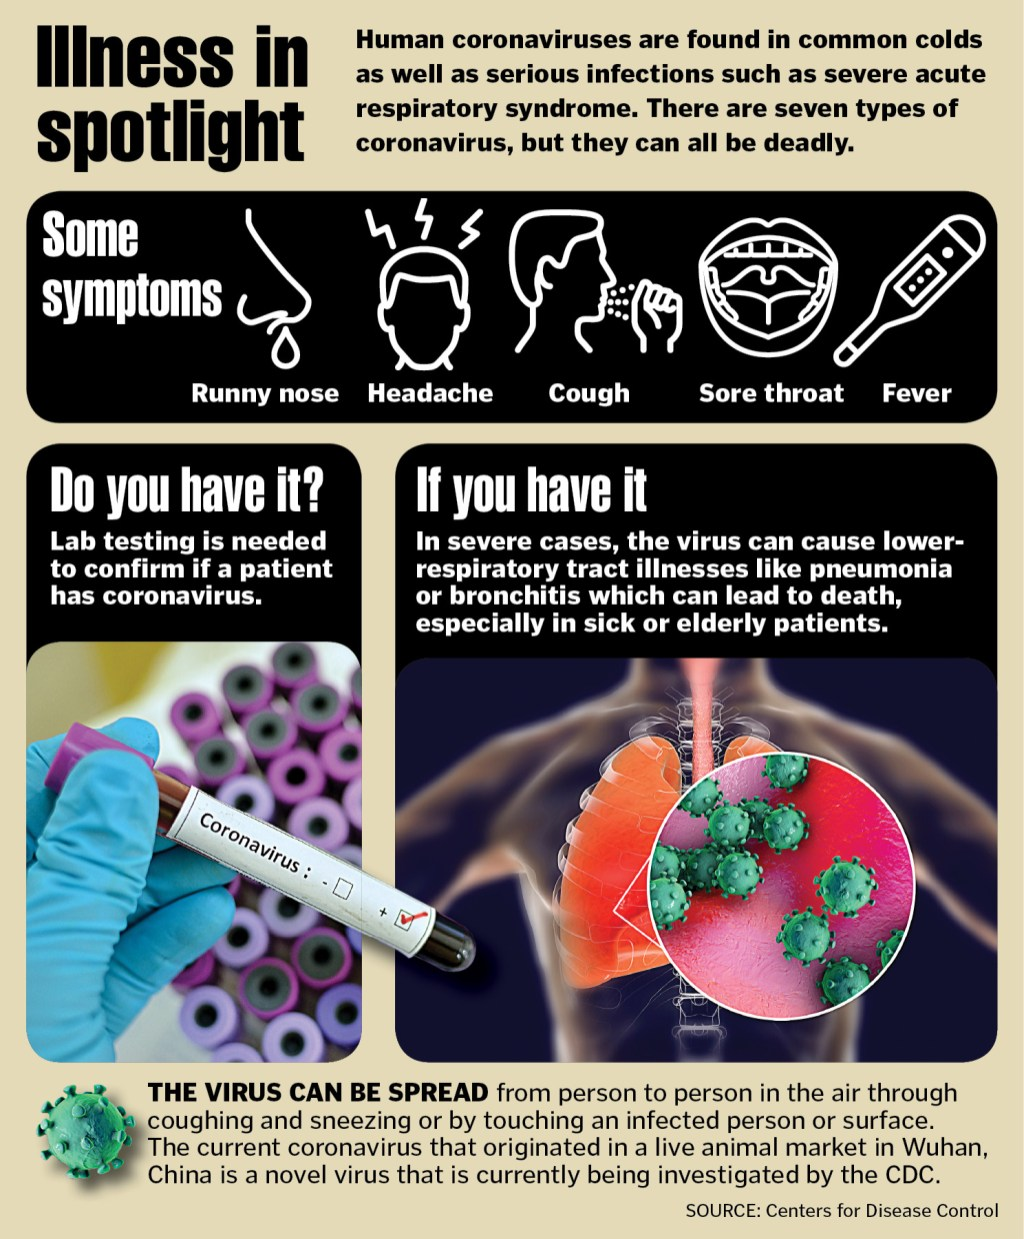 Five ways to protect yourself from coronavirus